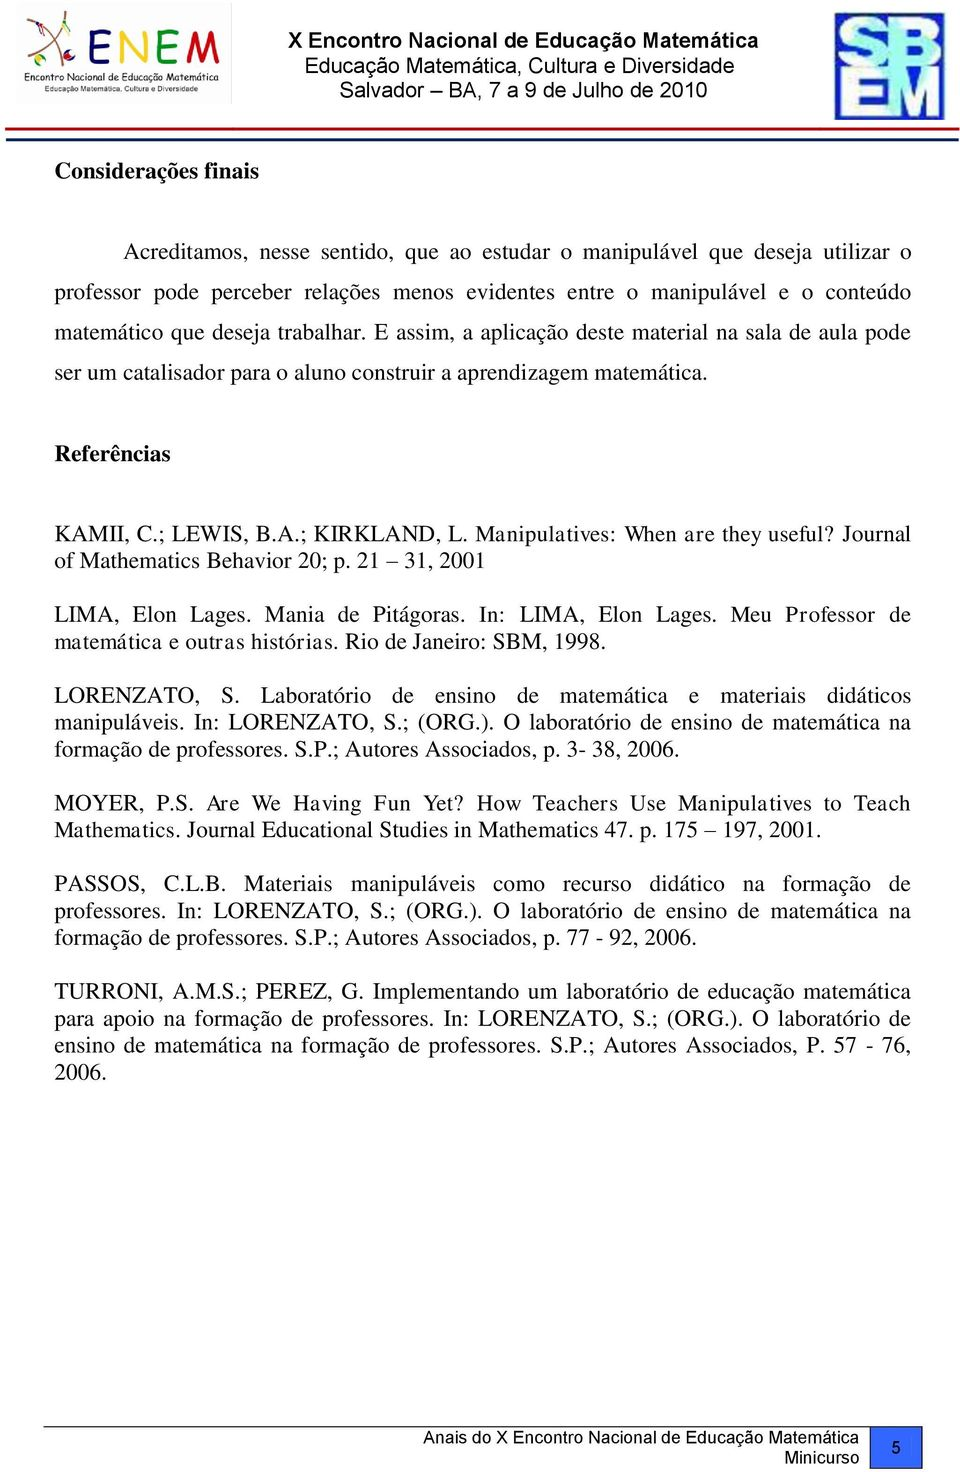 Manipulatives: When are they useful? Journal of Mathematics Behavior 20; p. 21 31, 2001 LIMA, Elon Lages. Mania de Pitágoras. In: LIMA, Elon Lages. Meu Professor de matemática e outras histórias.